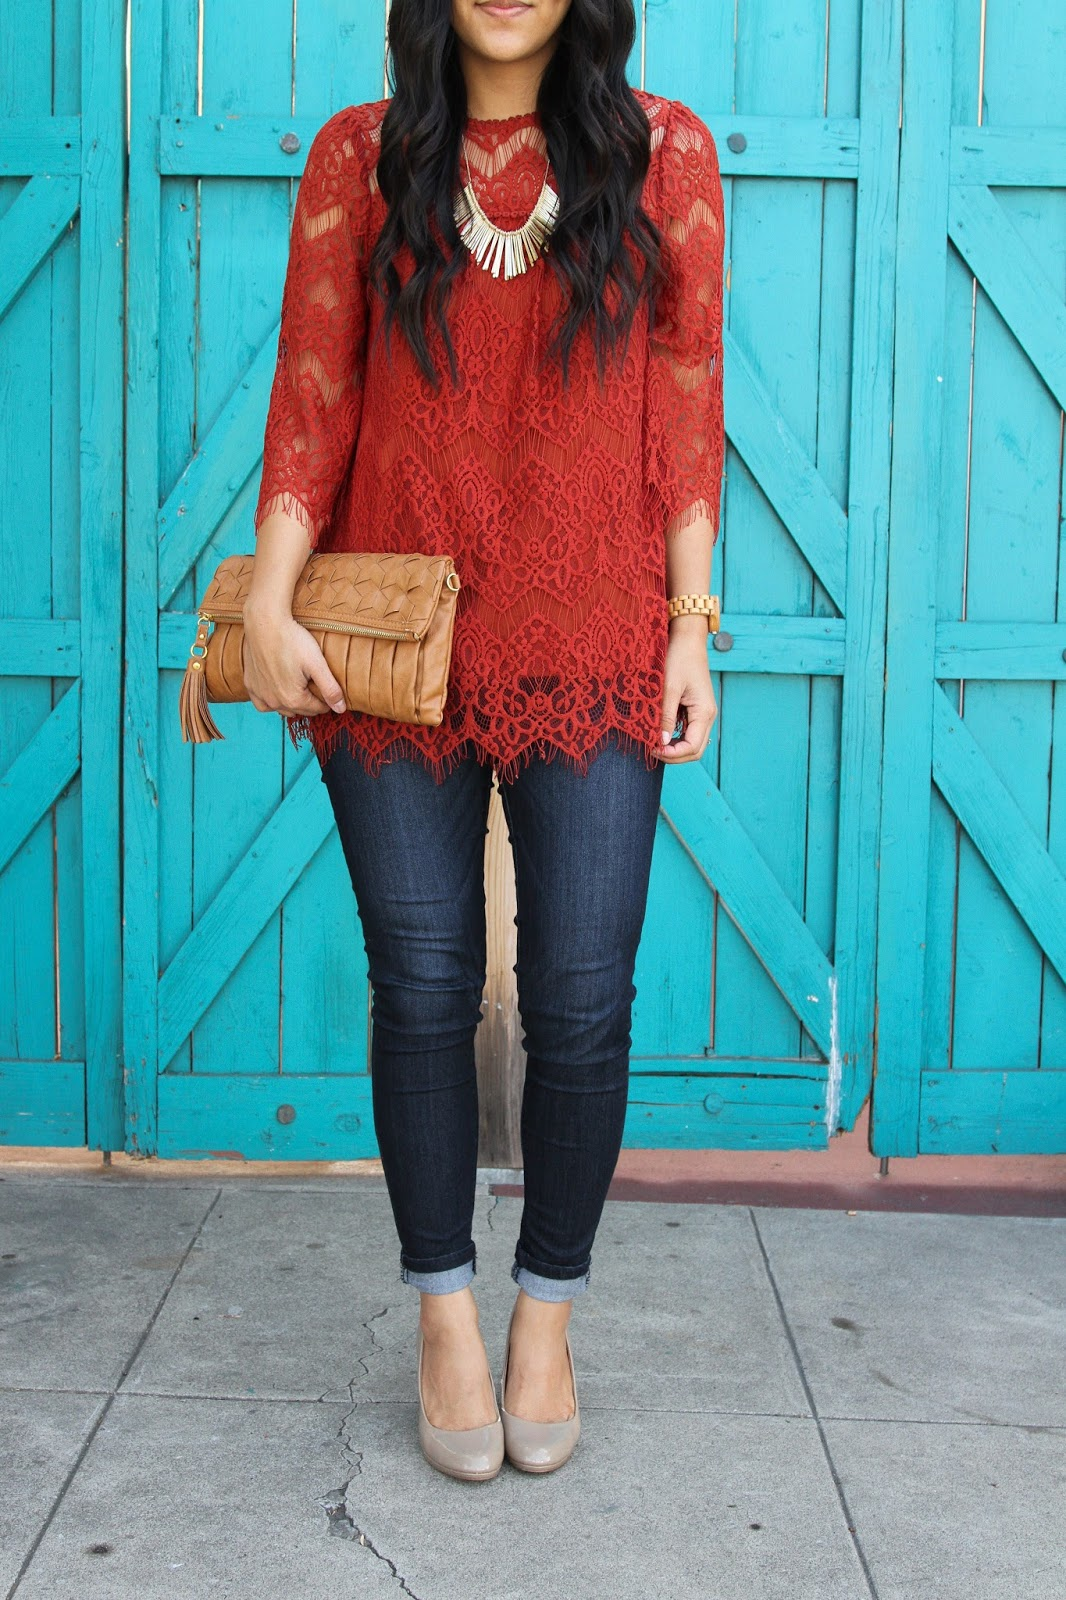 rust orange lace top + dark wash jeans + nude pumps + tan woven clutch + gold statement necklace